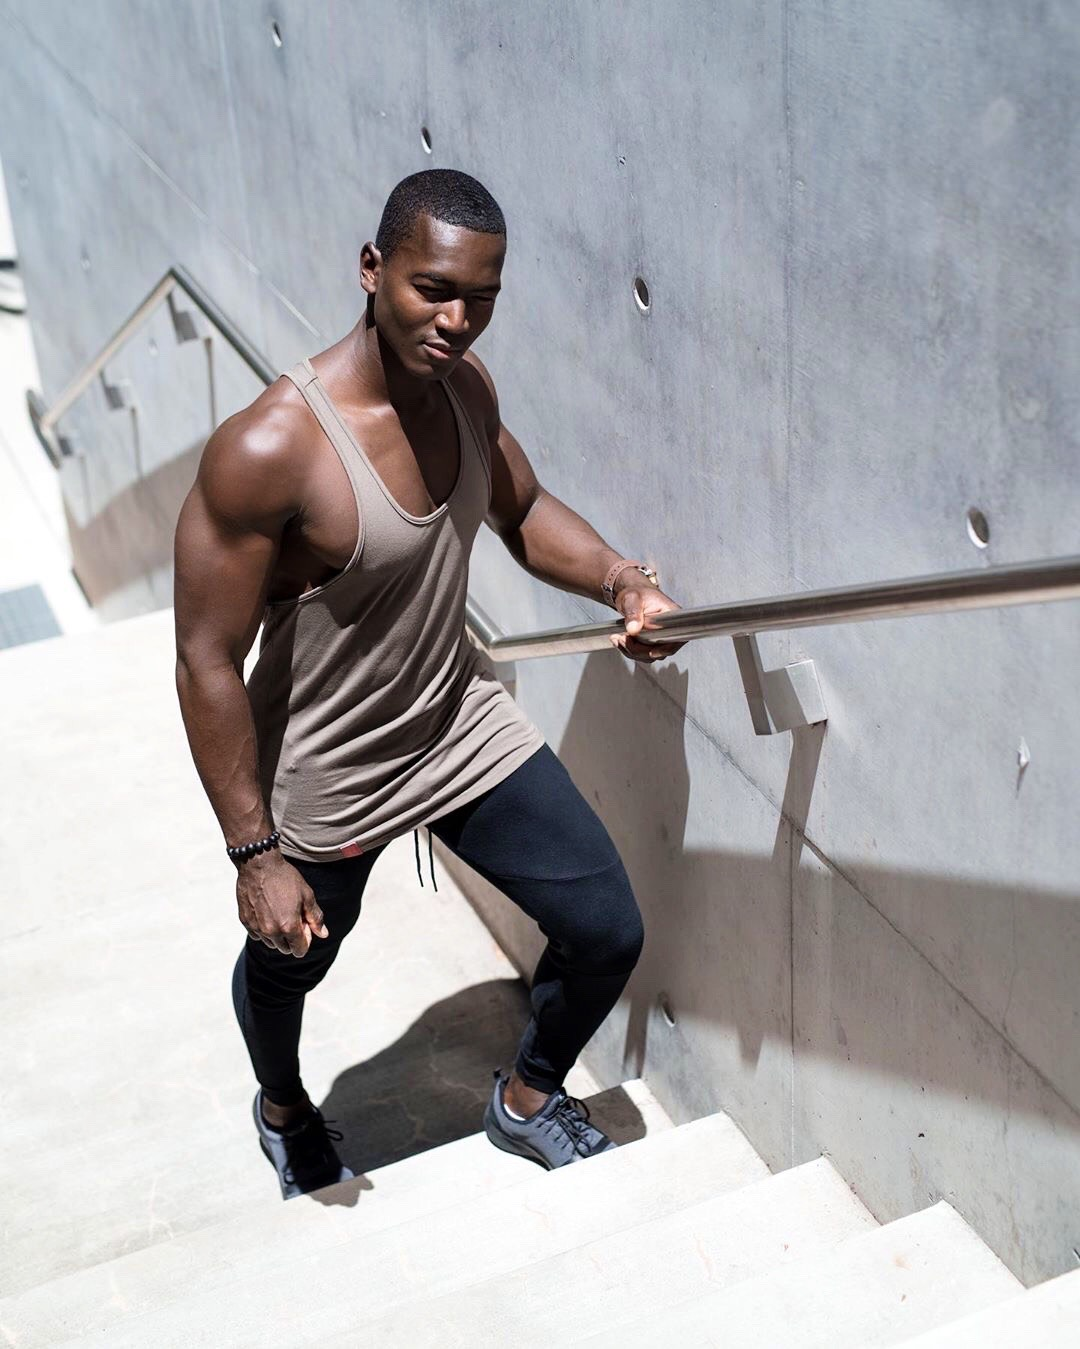 Bobby T holding onto a handrail during fitness shoot